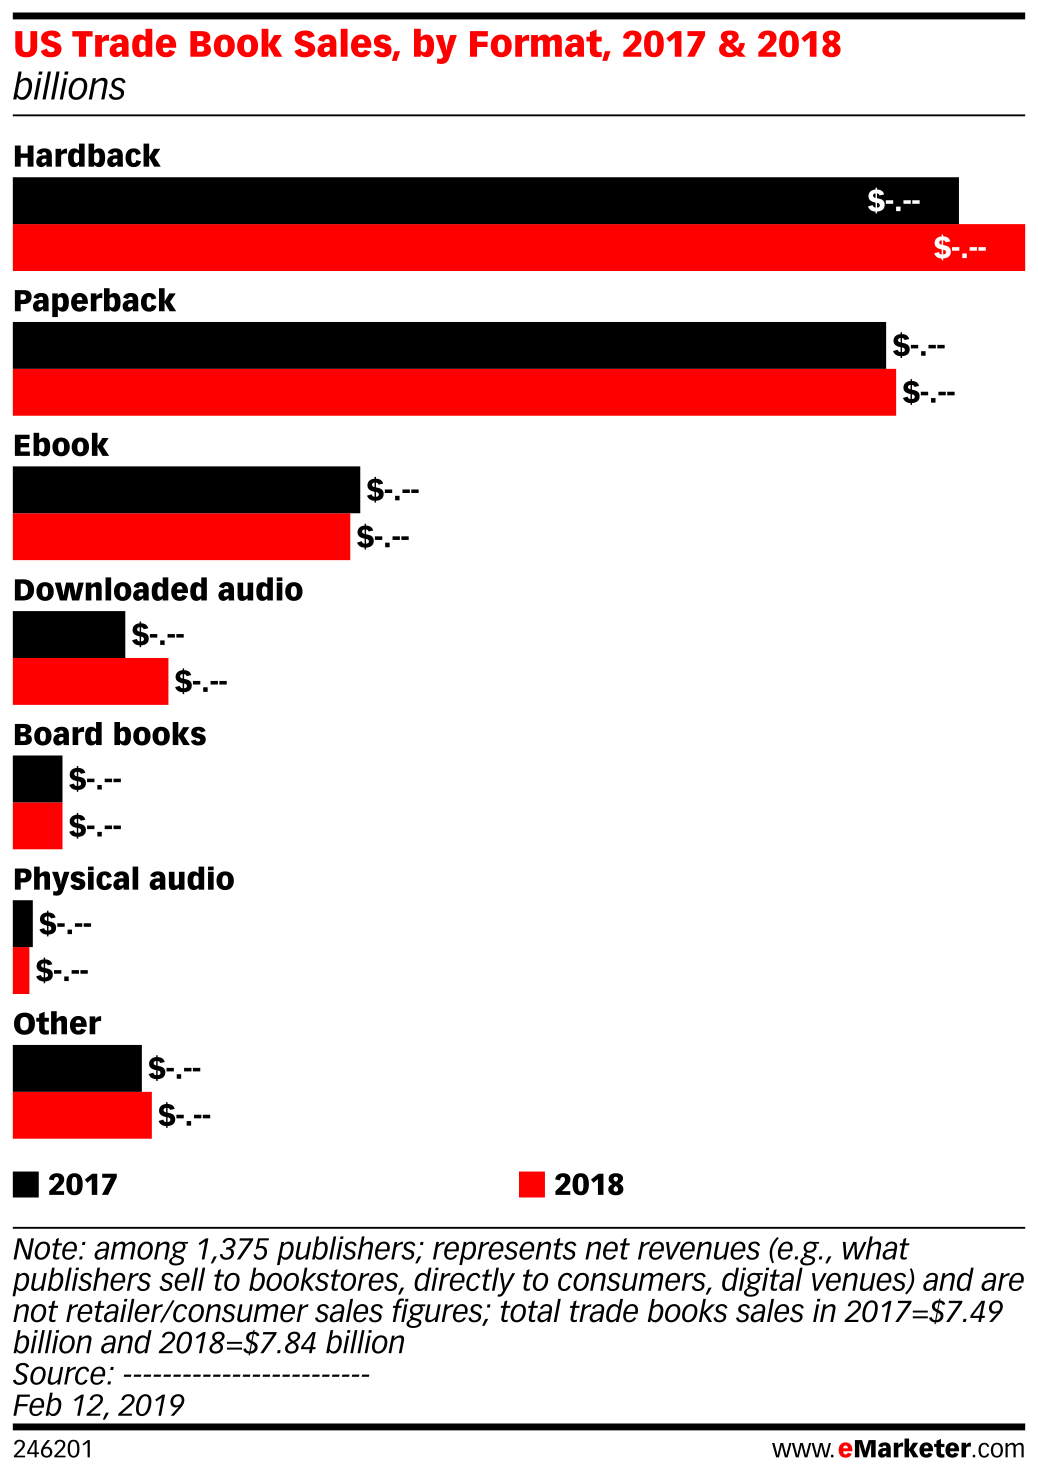 US Trade Book Sales, by Format, 2017 & 2018 (billions)